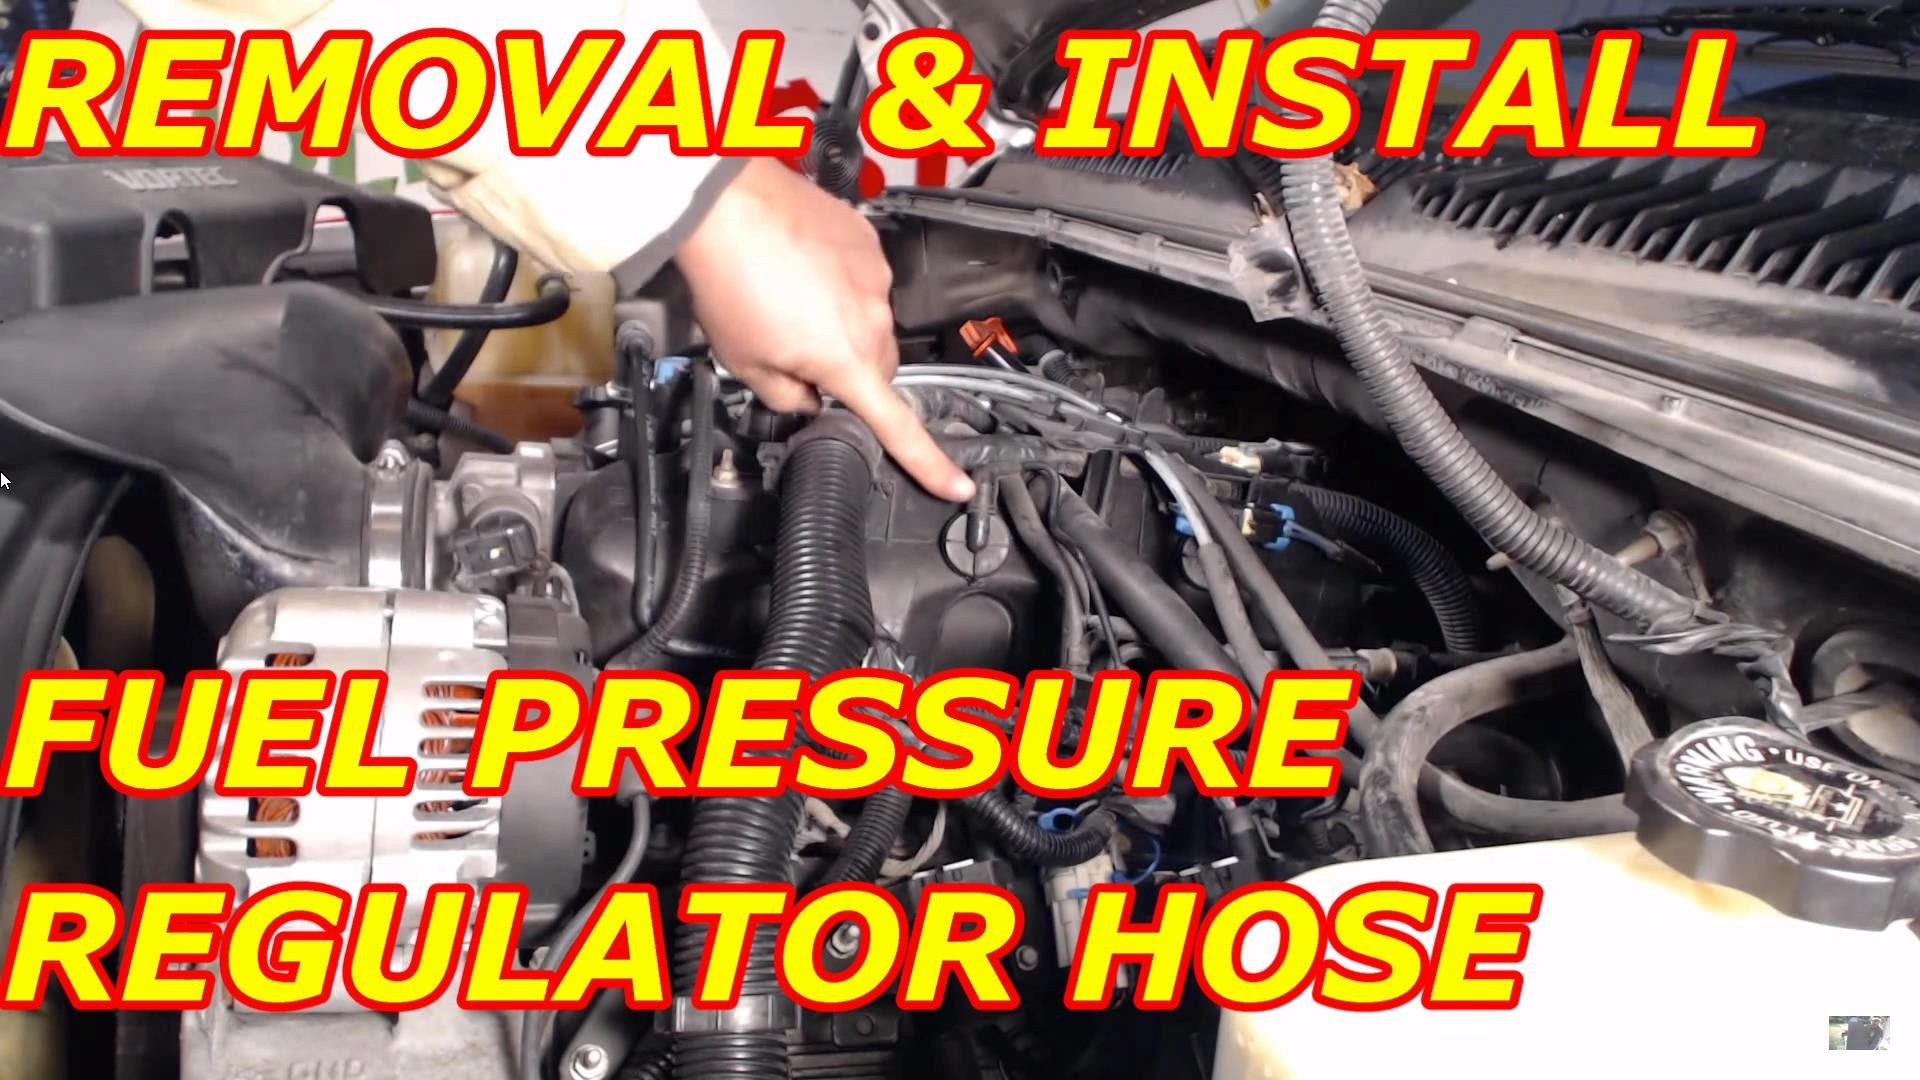 2004 Kia Sedona Engine Diagram Car Towmotor 4 Cylinder Optima Fuel Pressure Regulator Vacuum Hose Replacement Of